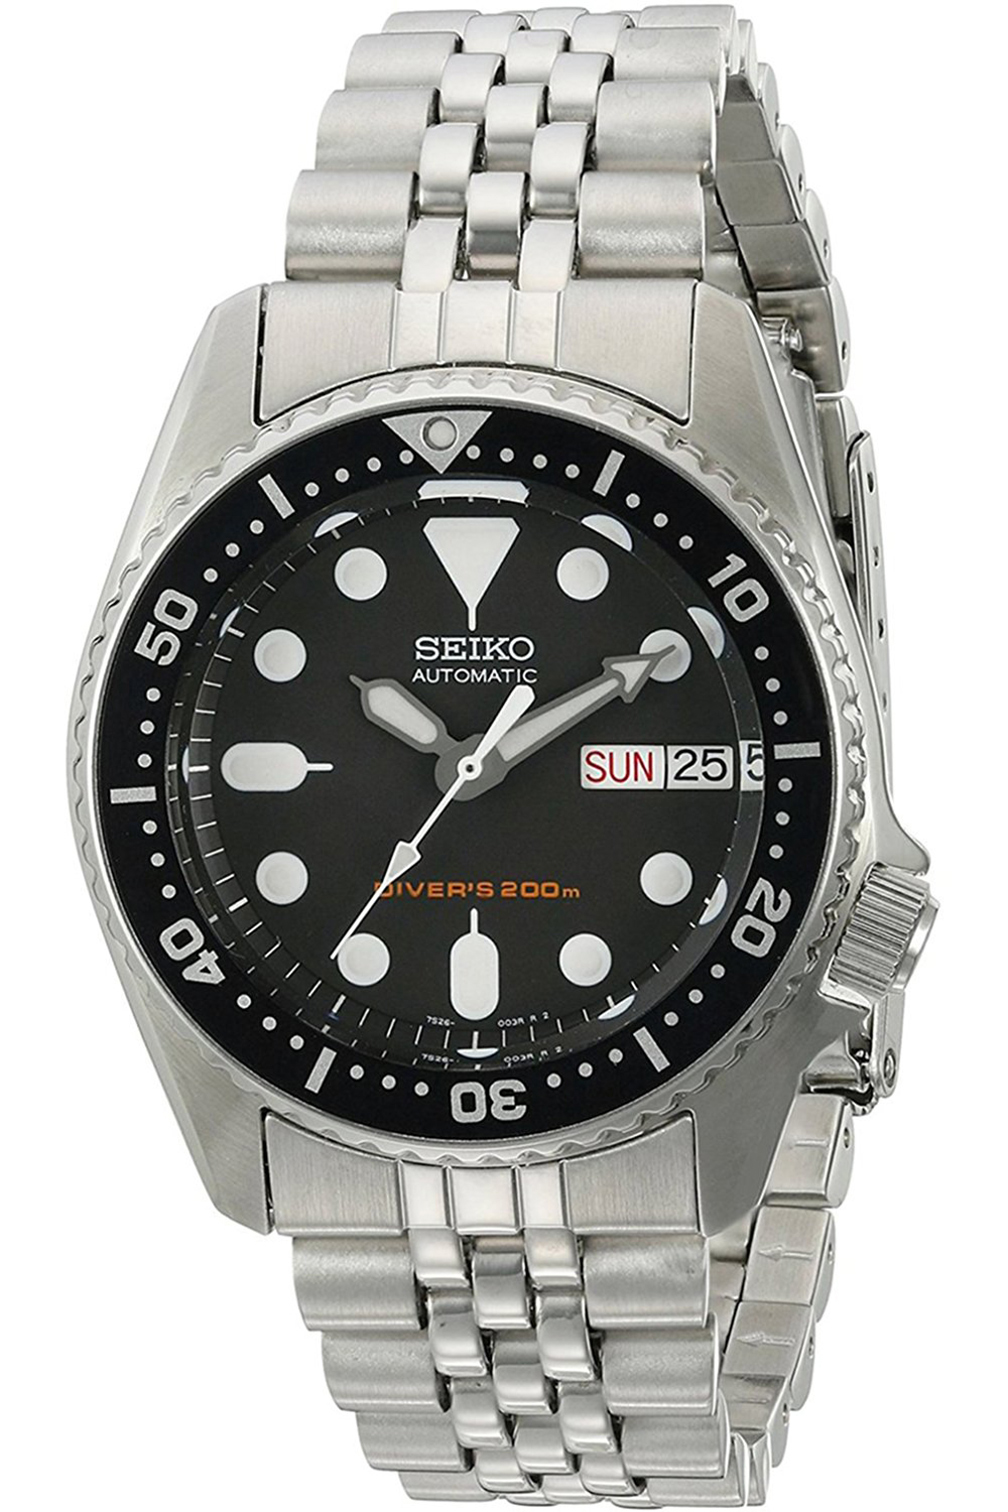 SKX013K2,Men's Automatic Diver,Mid-size,Self Winding,Stainless Steel Case,Screw Crown,200m WR,SKX013